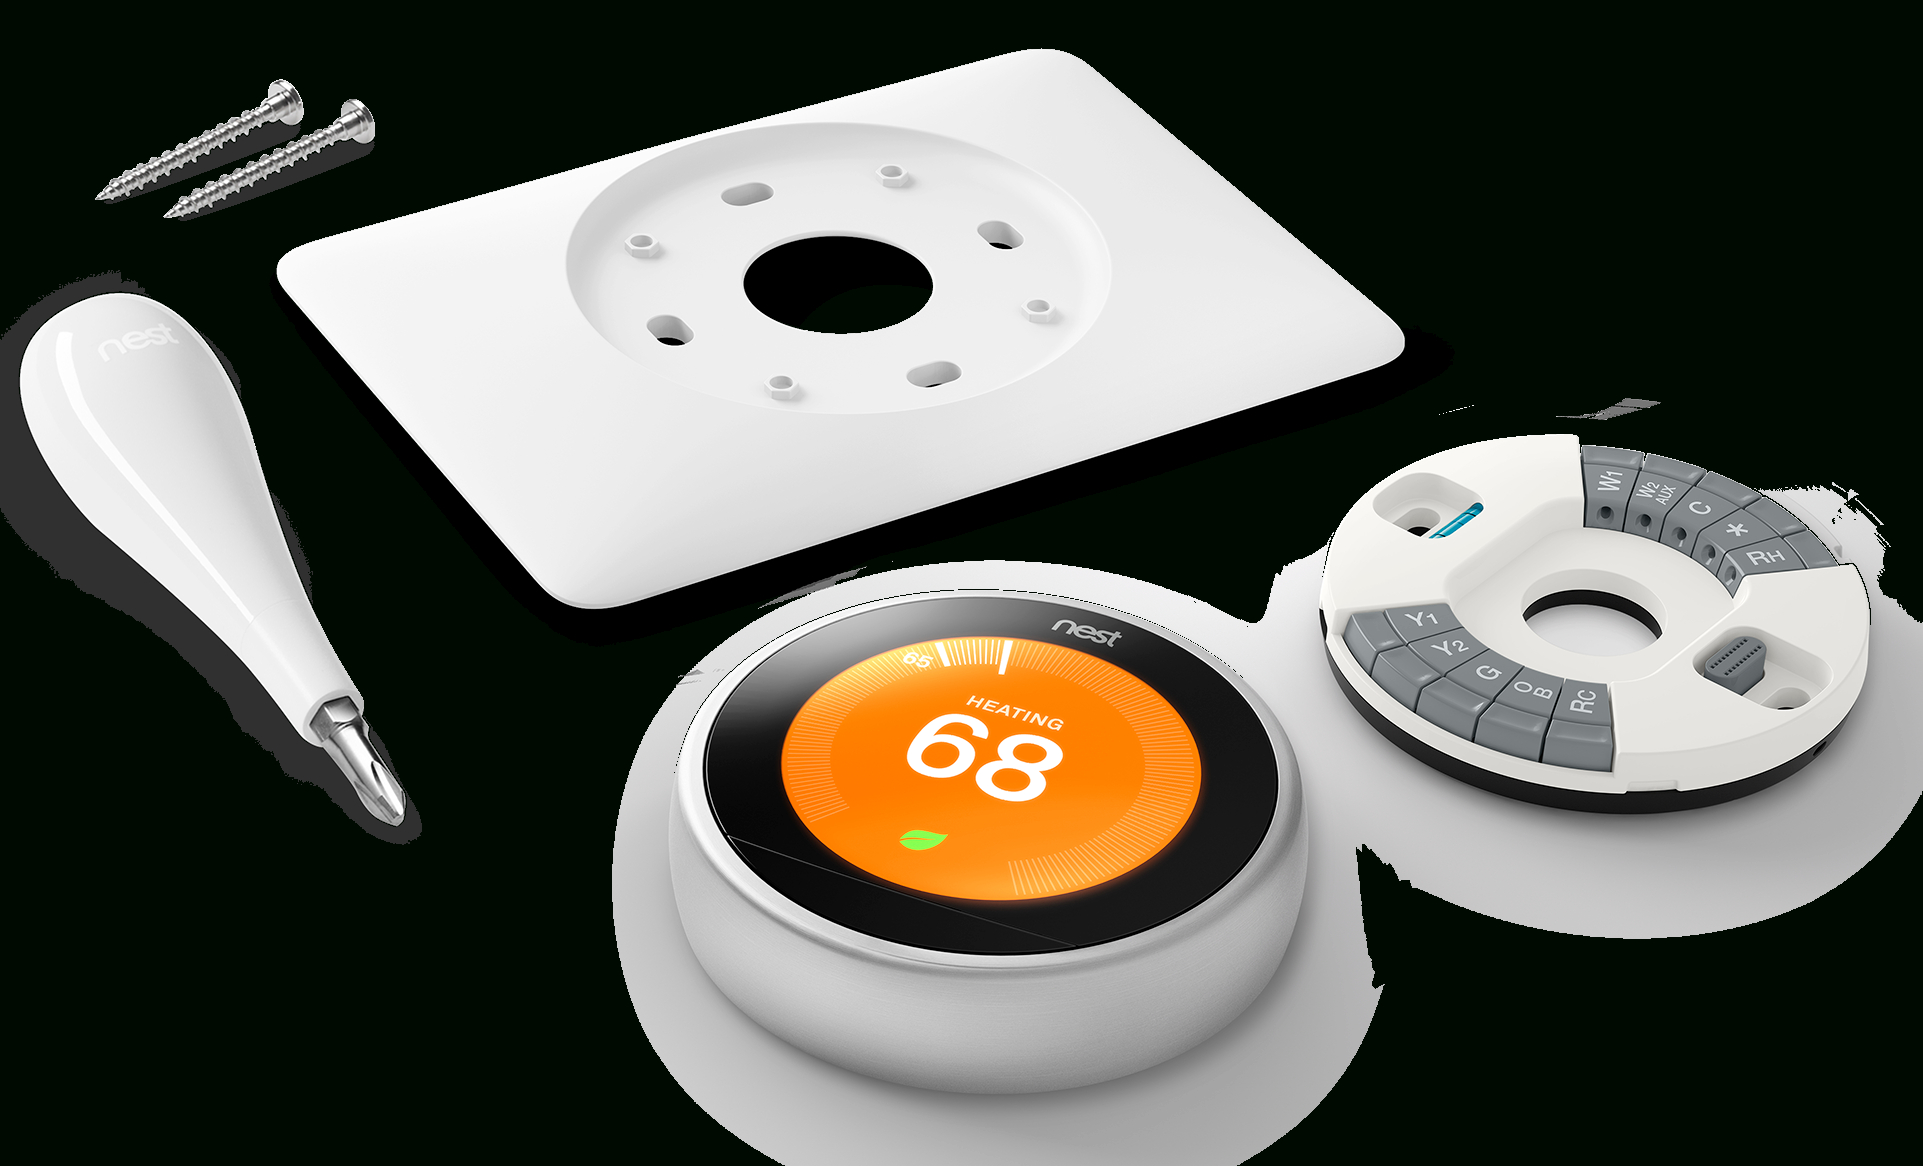 How To Install Your Nest Thermostat - Nest Thermostat Base Wiring Diagram